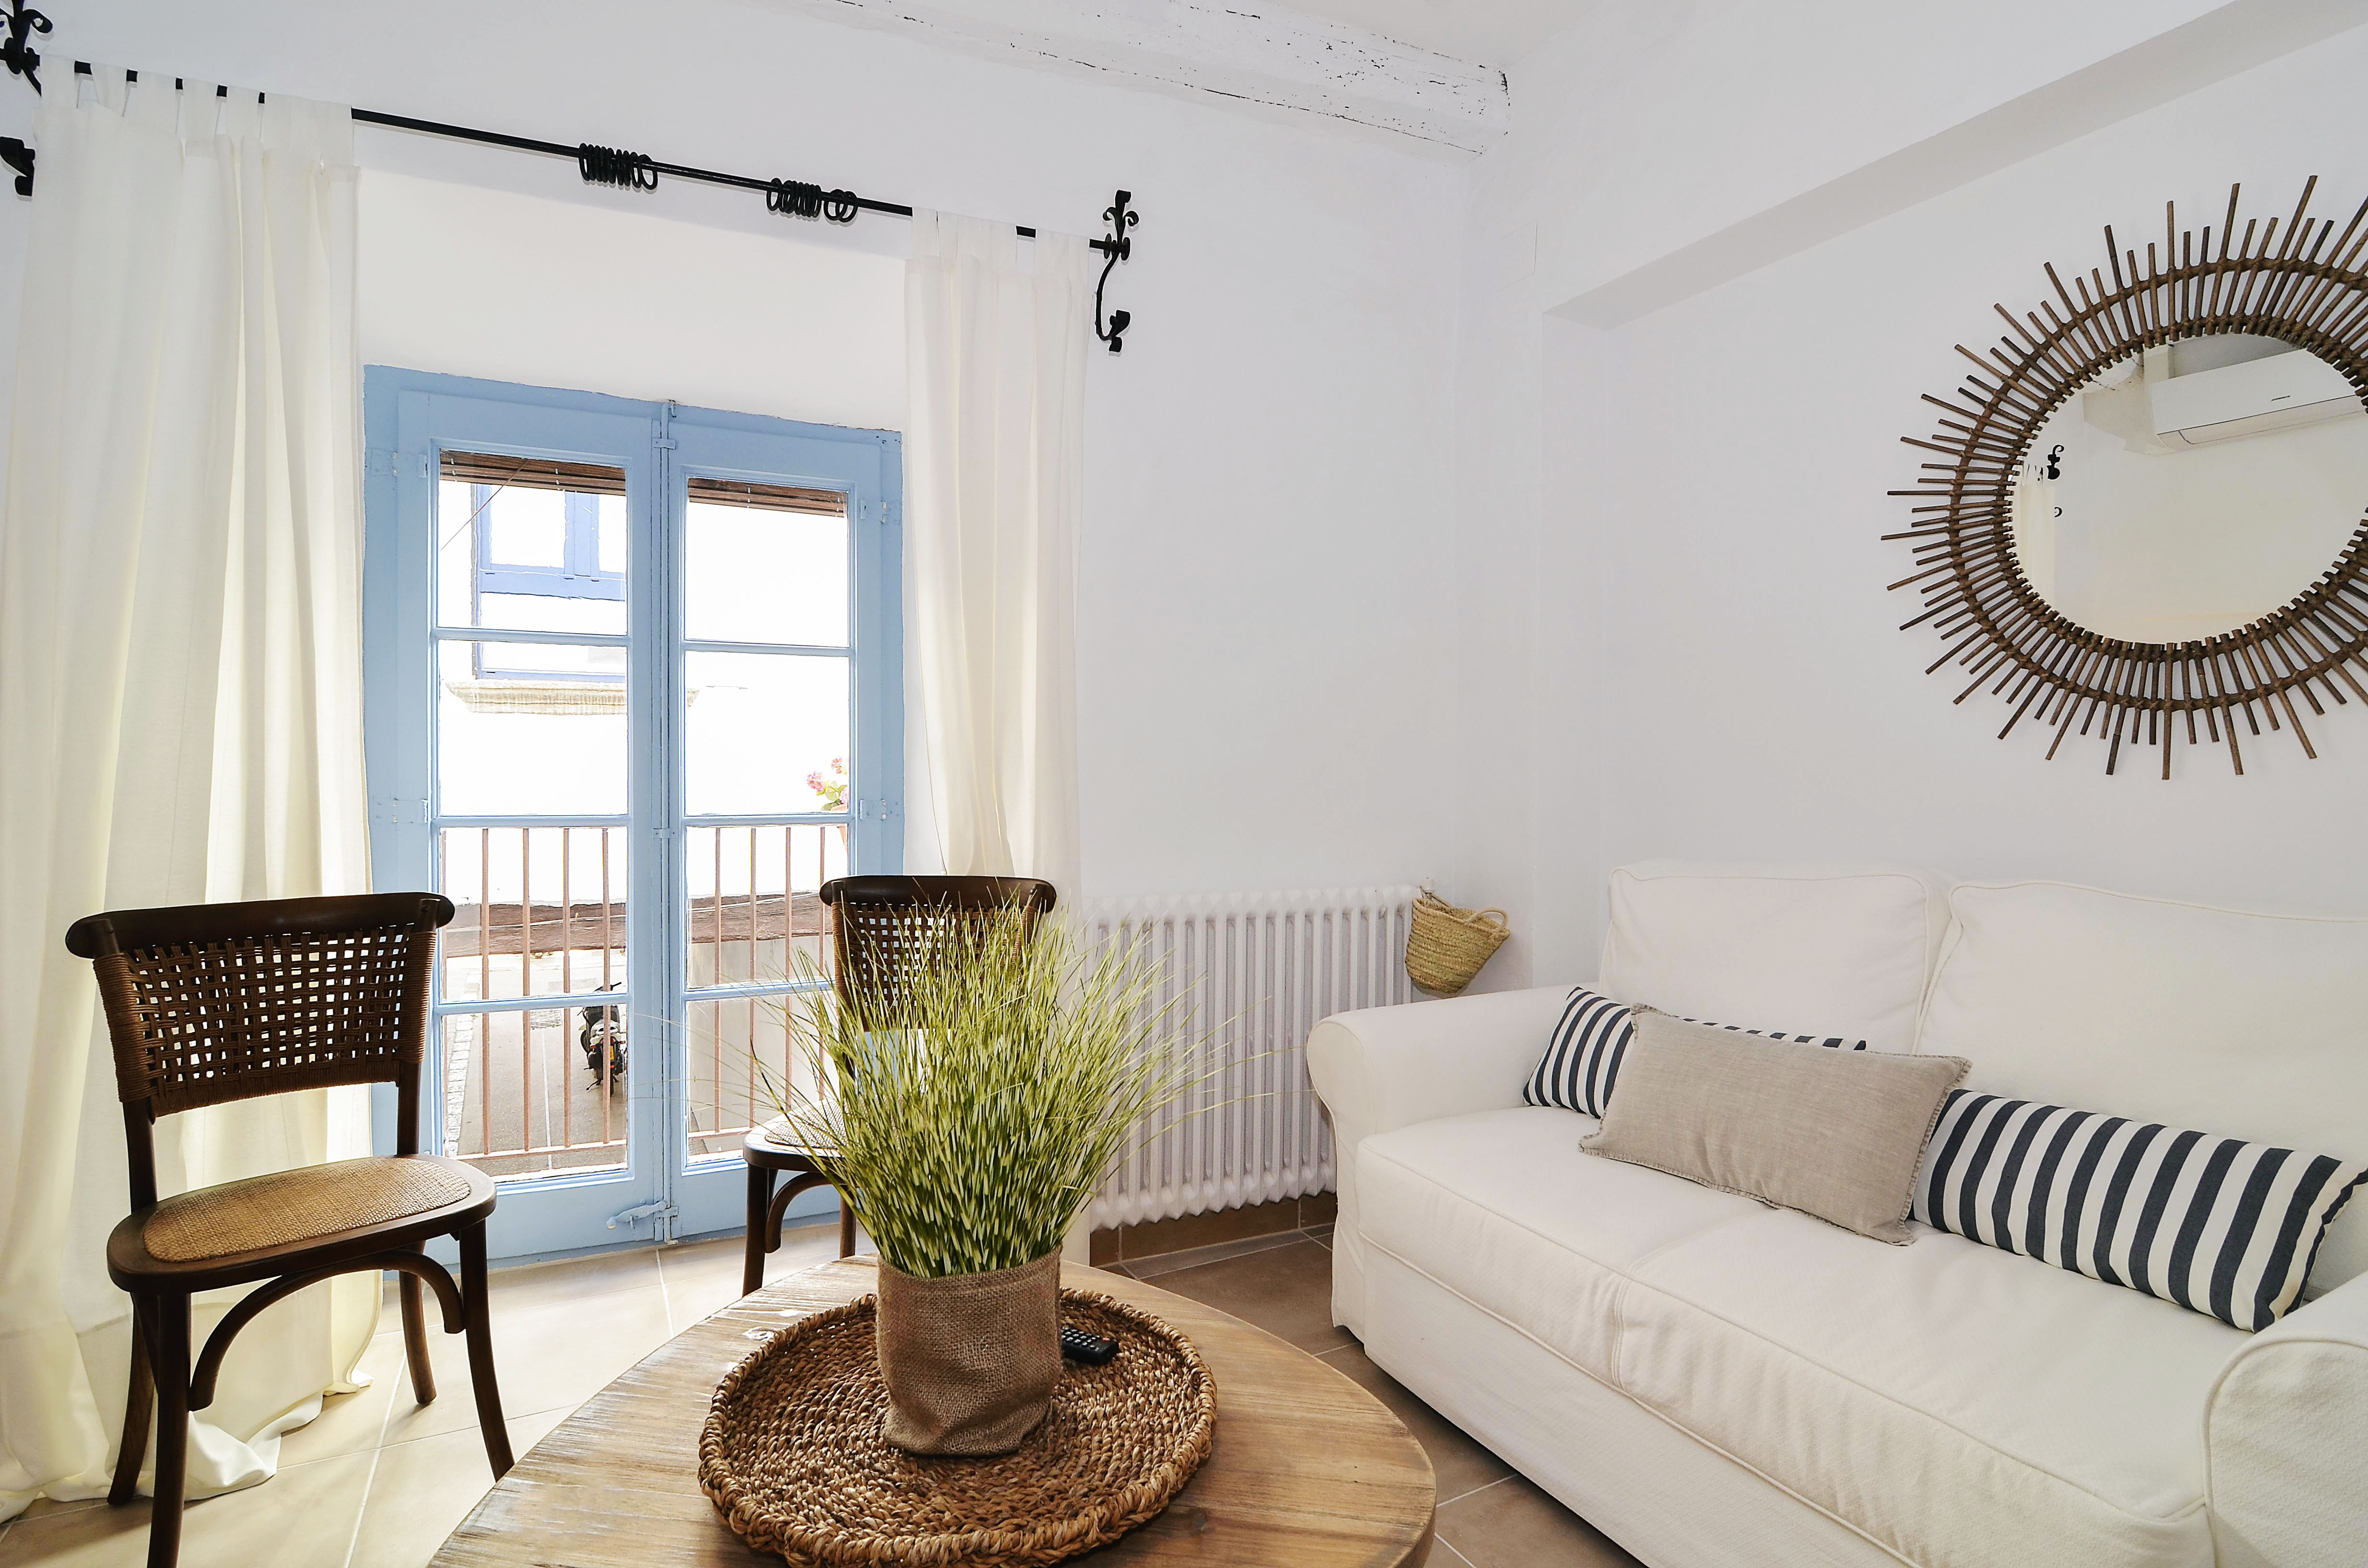 House tour: old fisherman's house in Sitges: sitting room with blue window